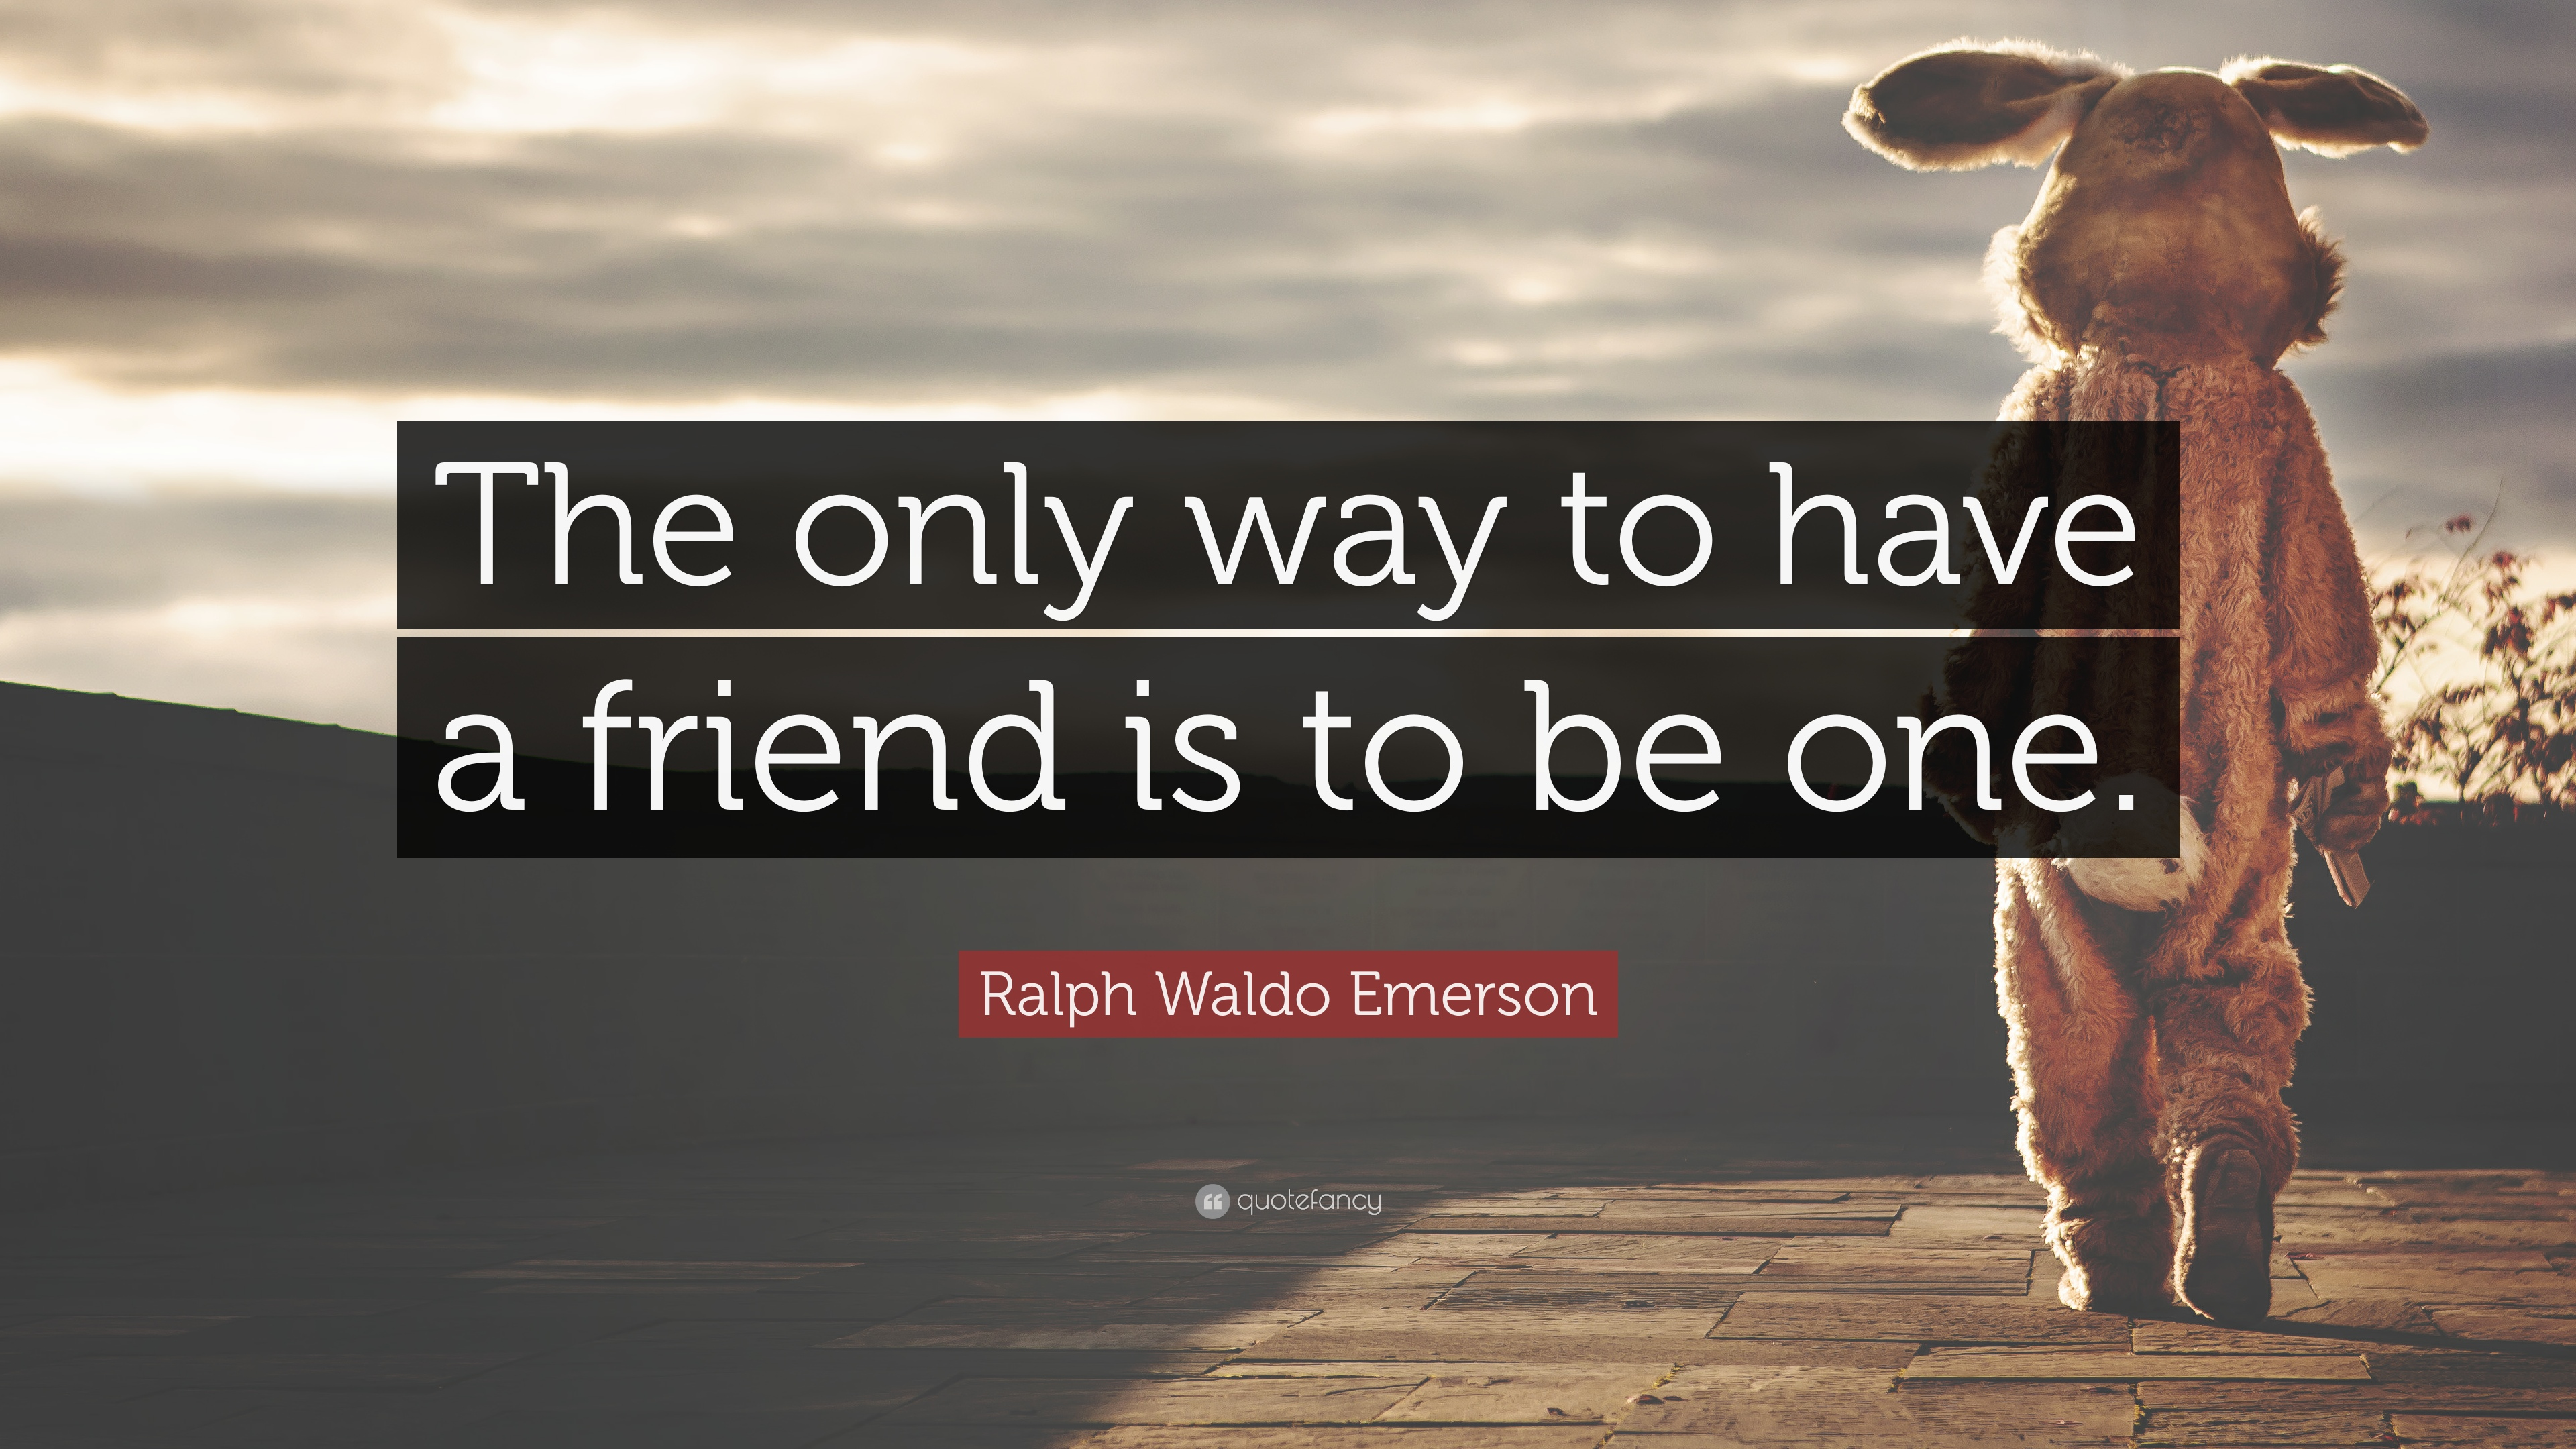 ralph waldo emerson essay on friendship The complete text of essays, first series friendship a ruddy drop of manly blood the surging sea outweighs the world uncertain comes and goes, the lover rooted stays.